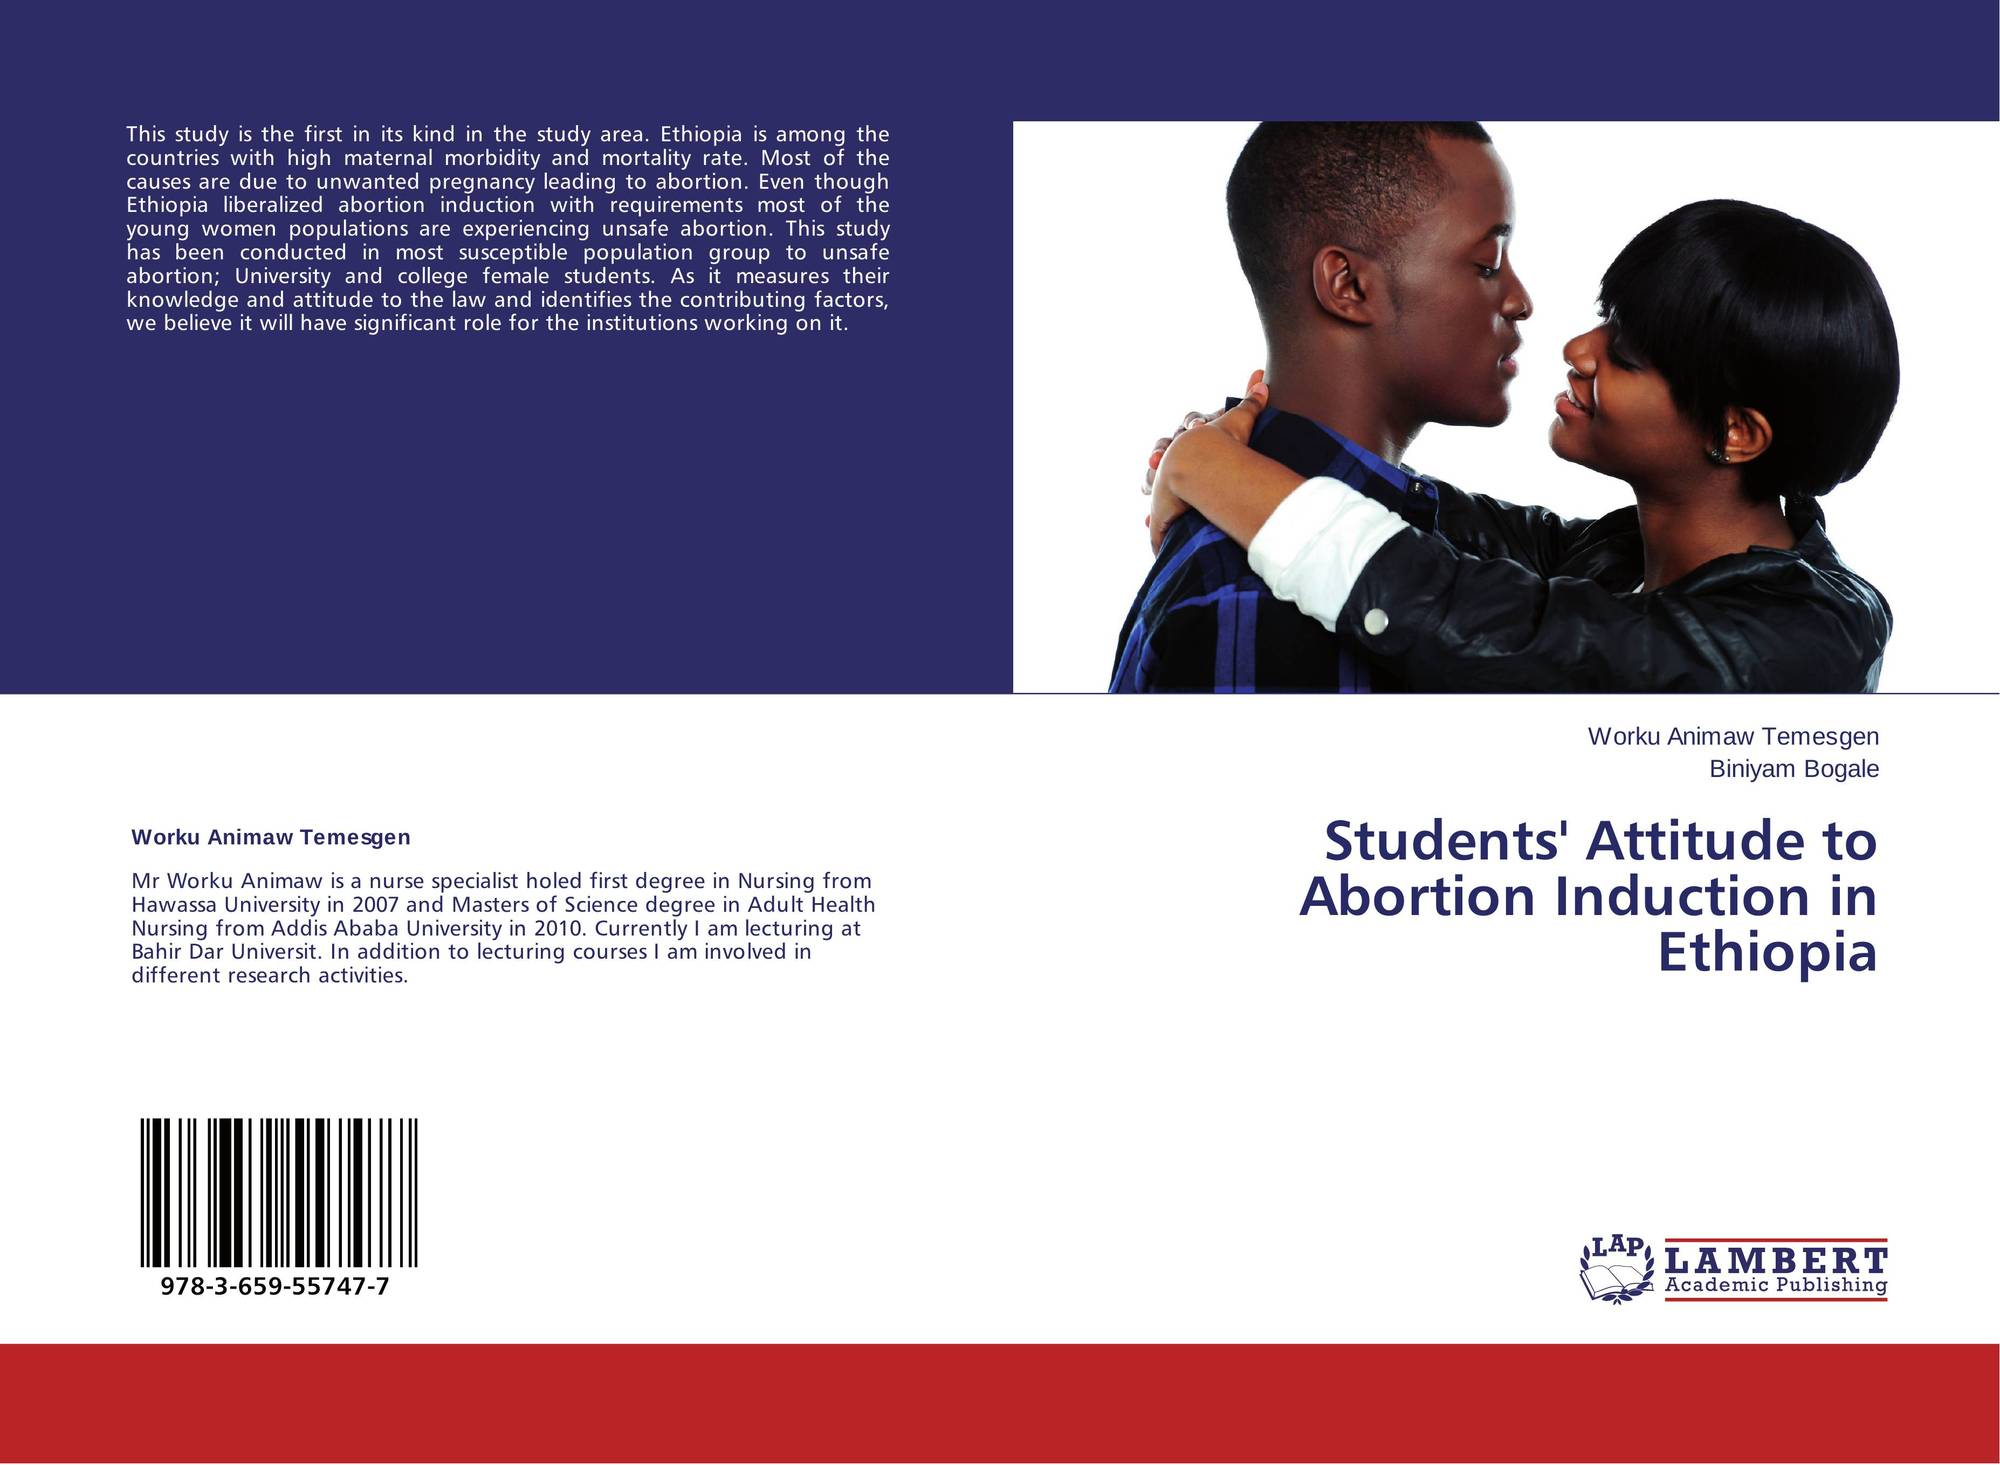 societys attitude towards abortion Abortion impact on society positive and negative abortion has been around for a very long time and has had an impact on society in variety of ways, both positive and negative christian influence in western civilizations caused widespread disapproval of the practice by the nineteenth century many nations passed laws banning abortion.